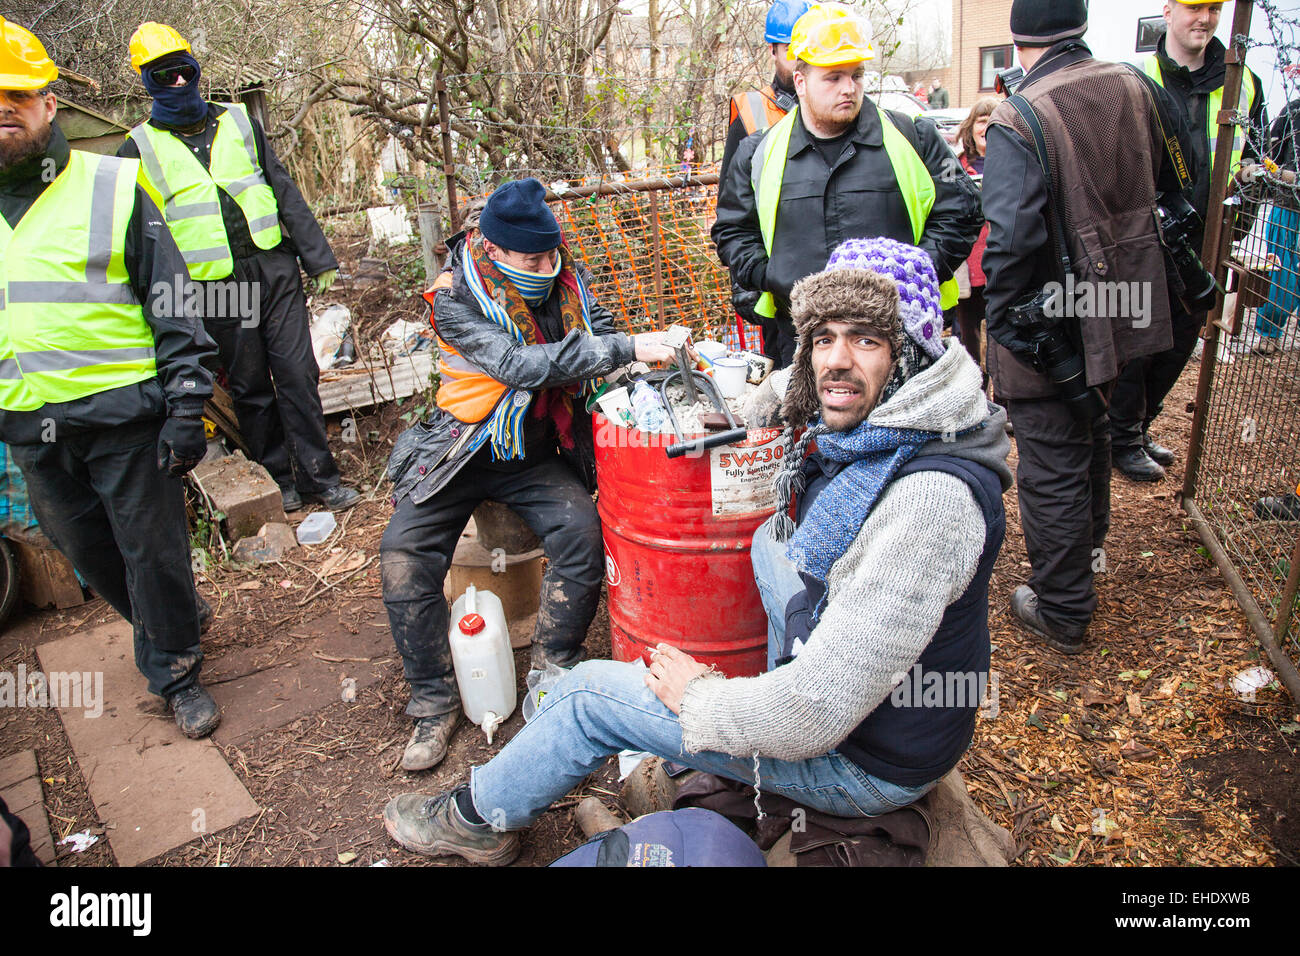 Bristol, UK. 12th Mar, 2015. Bailiffs moved to evict protesters who are preventing work commencing on a new Metrobus - Stock Image